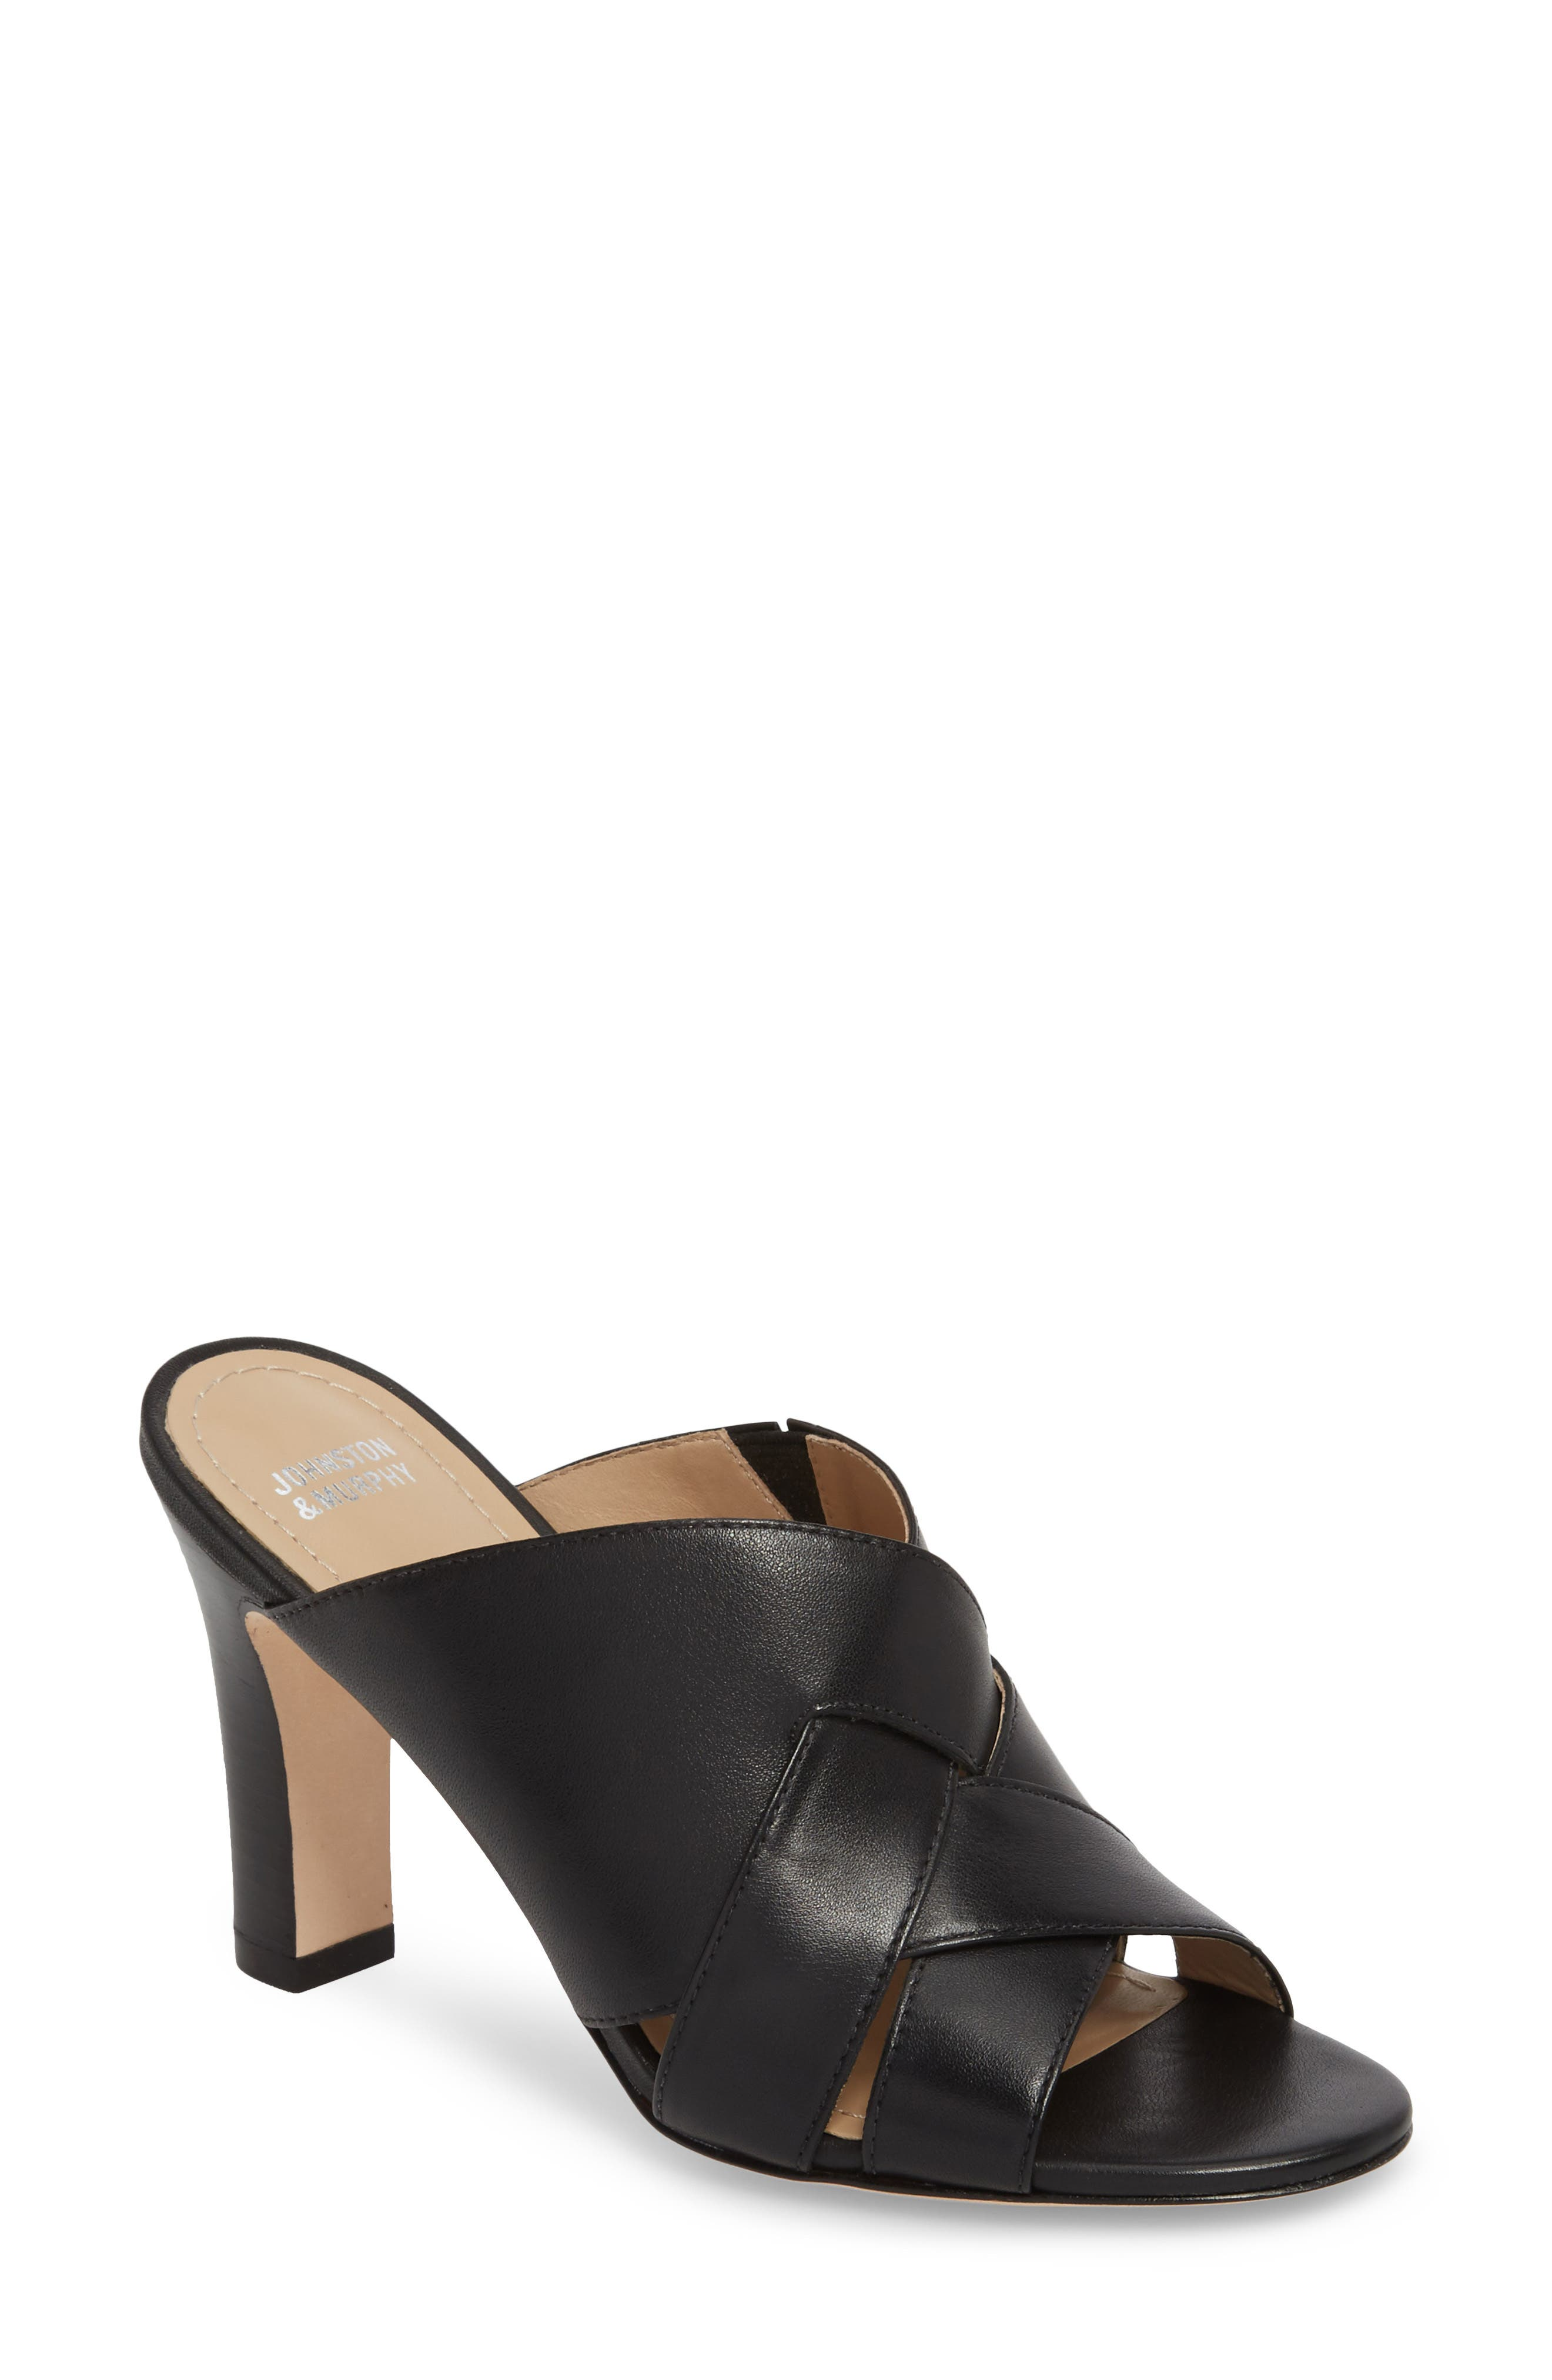 Carrie Mule Sandal,                             Main thumbnail 1, color,                             BLACK LEATHER